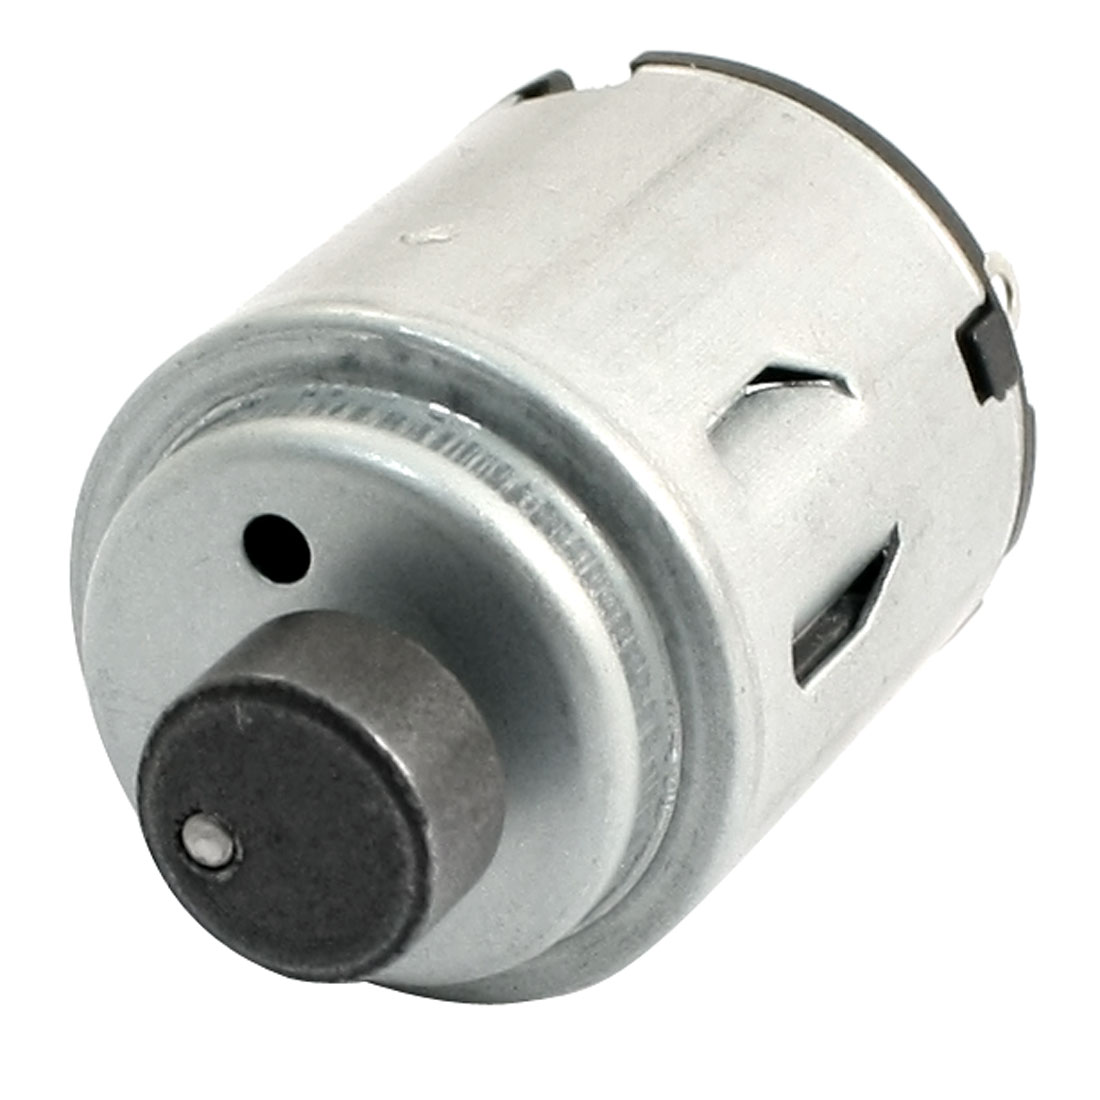 DC 3-12V 8000-21000RPM Micro Vibrating Motor R260 for Massager